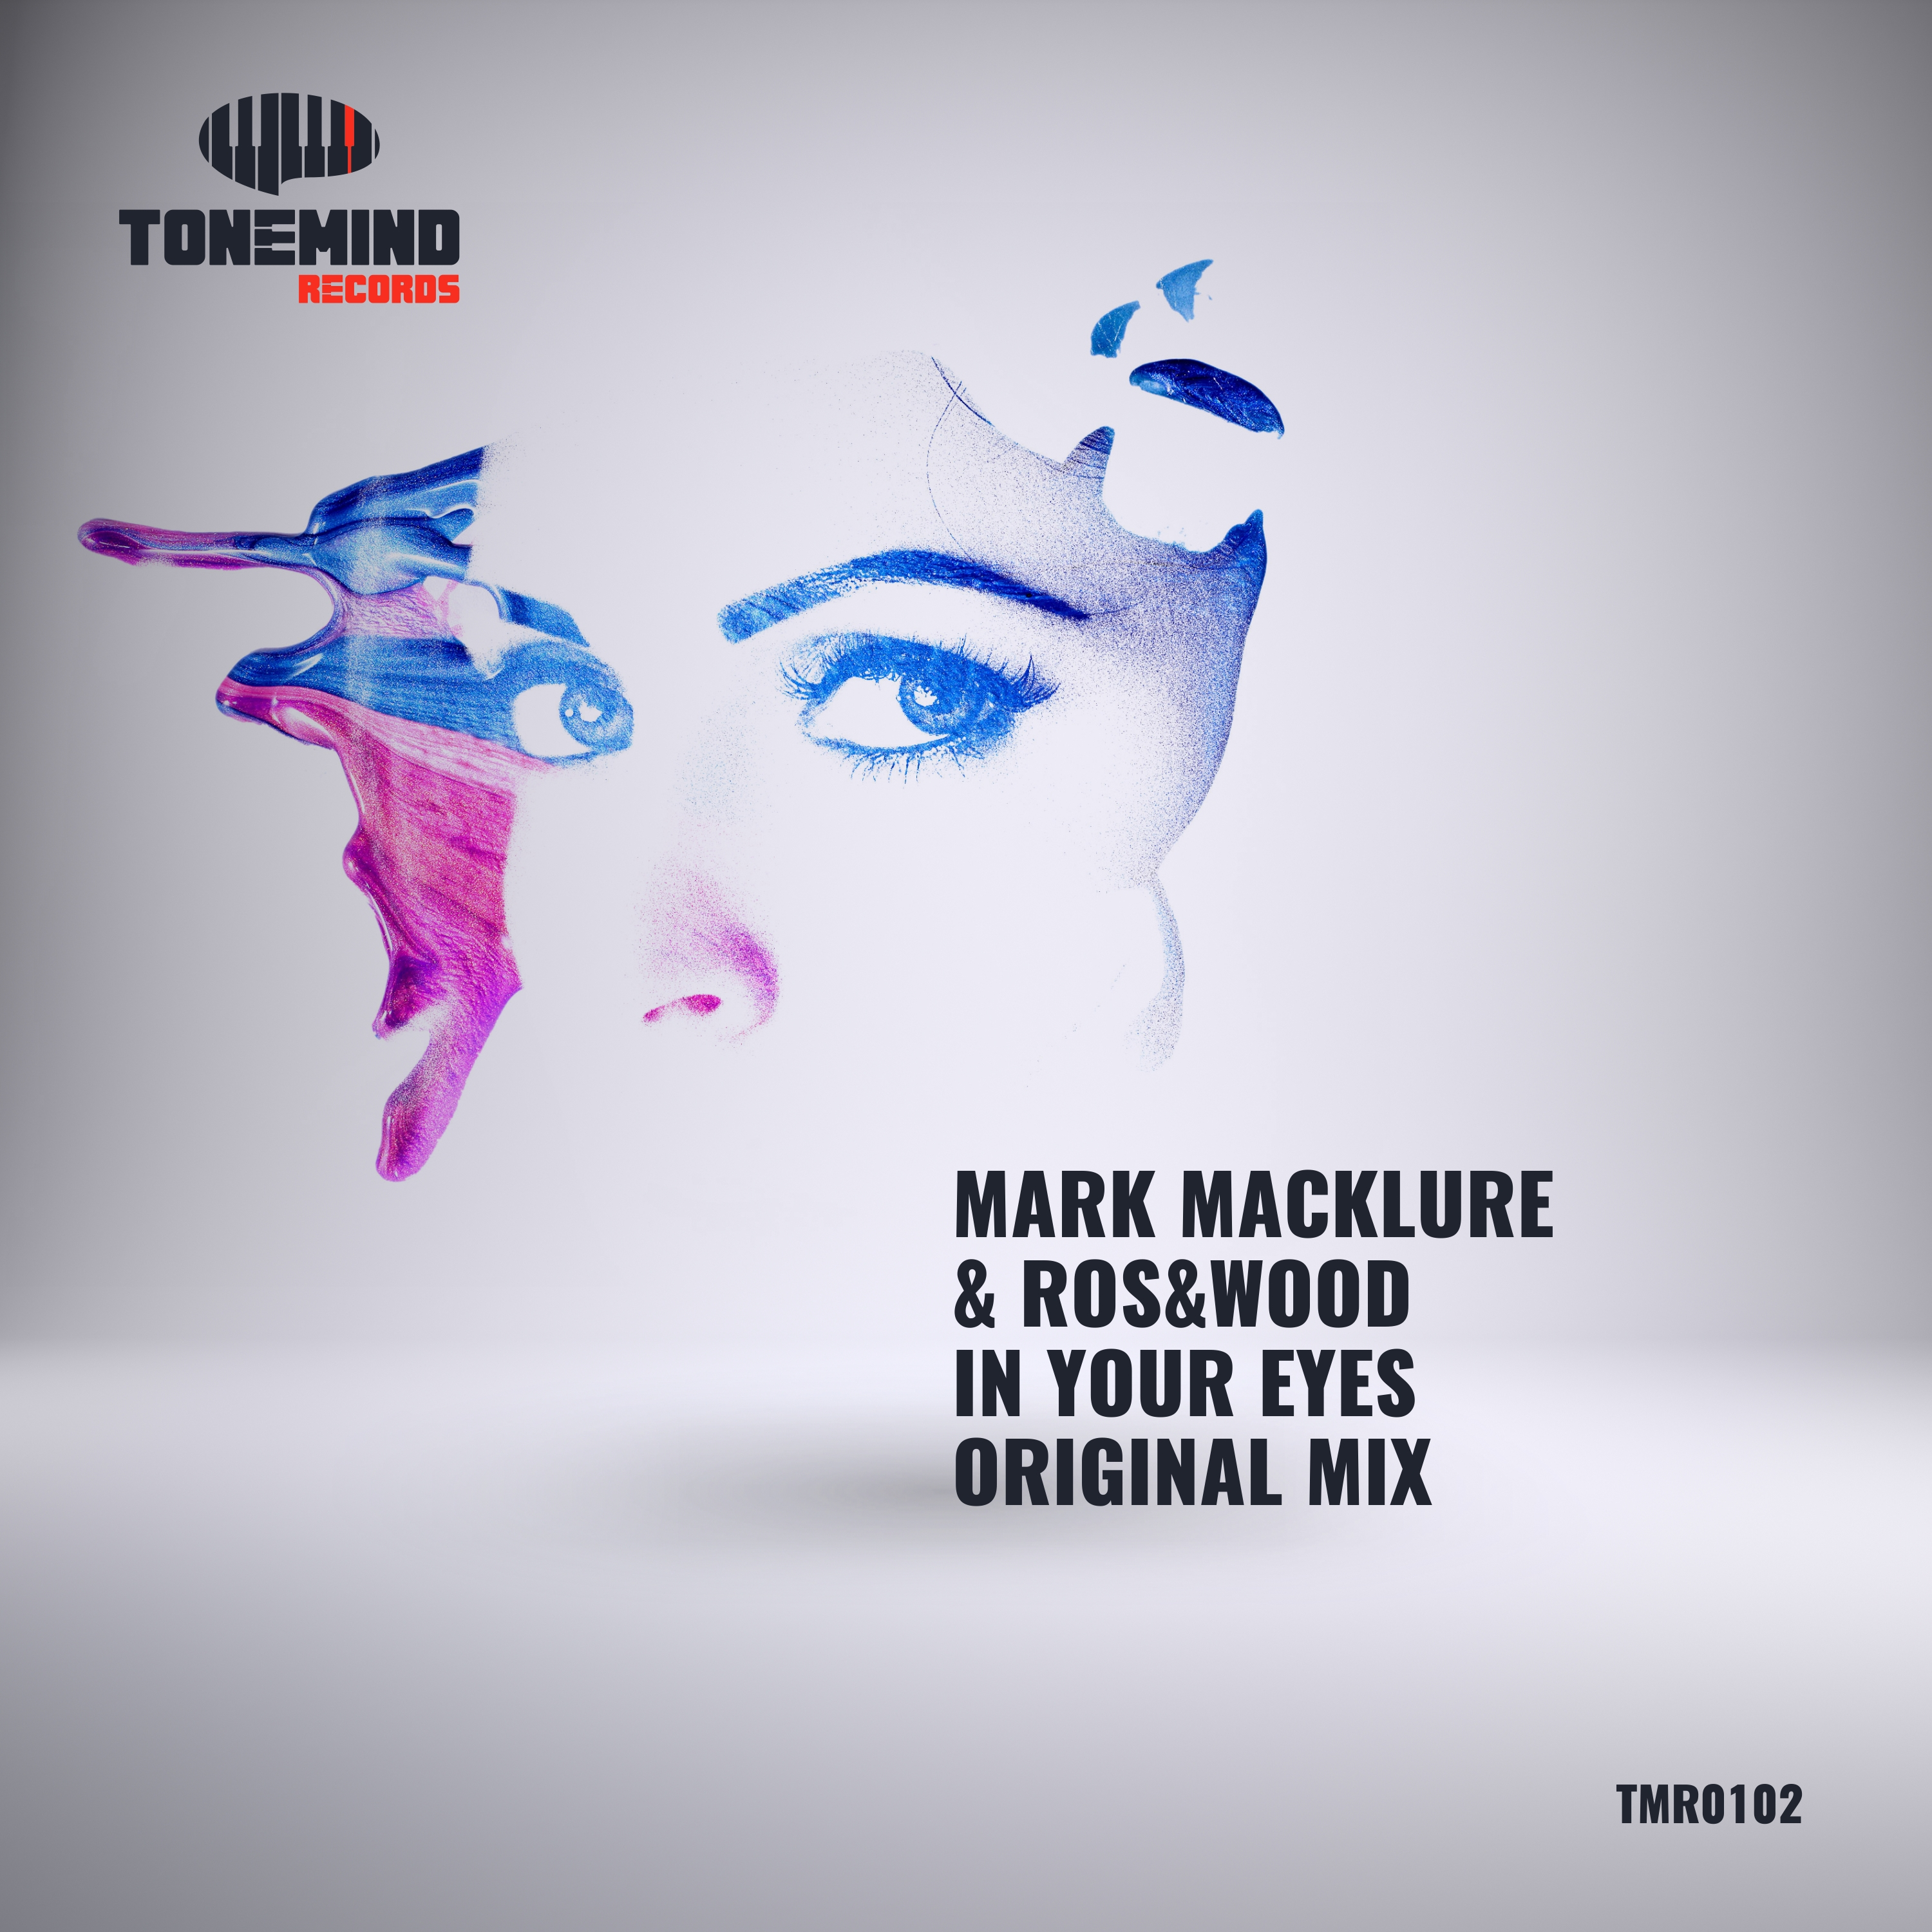 Mark Macklure & Ros&wood - In Your Eyes (Radio mix)